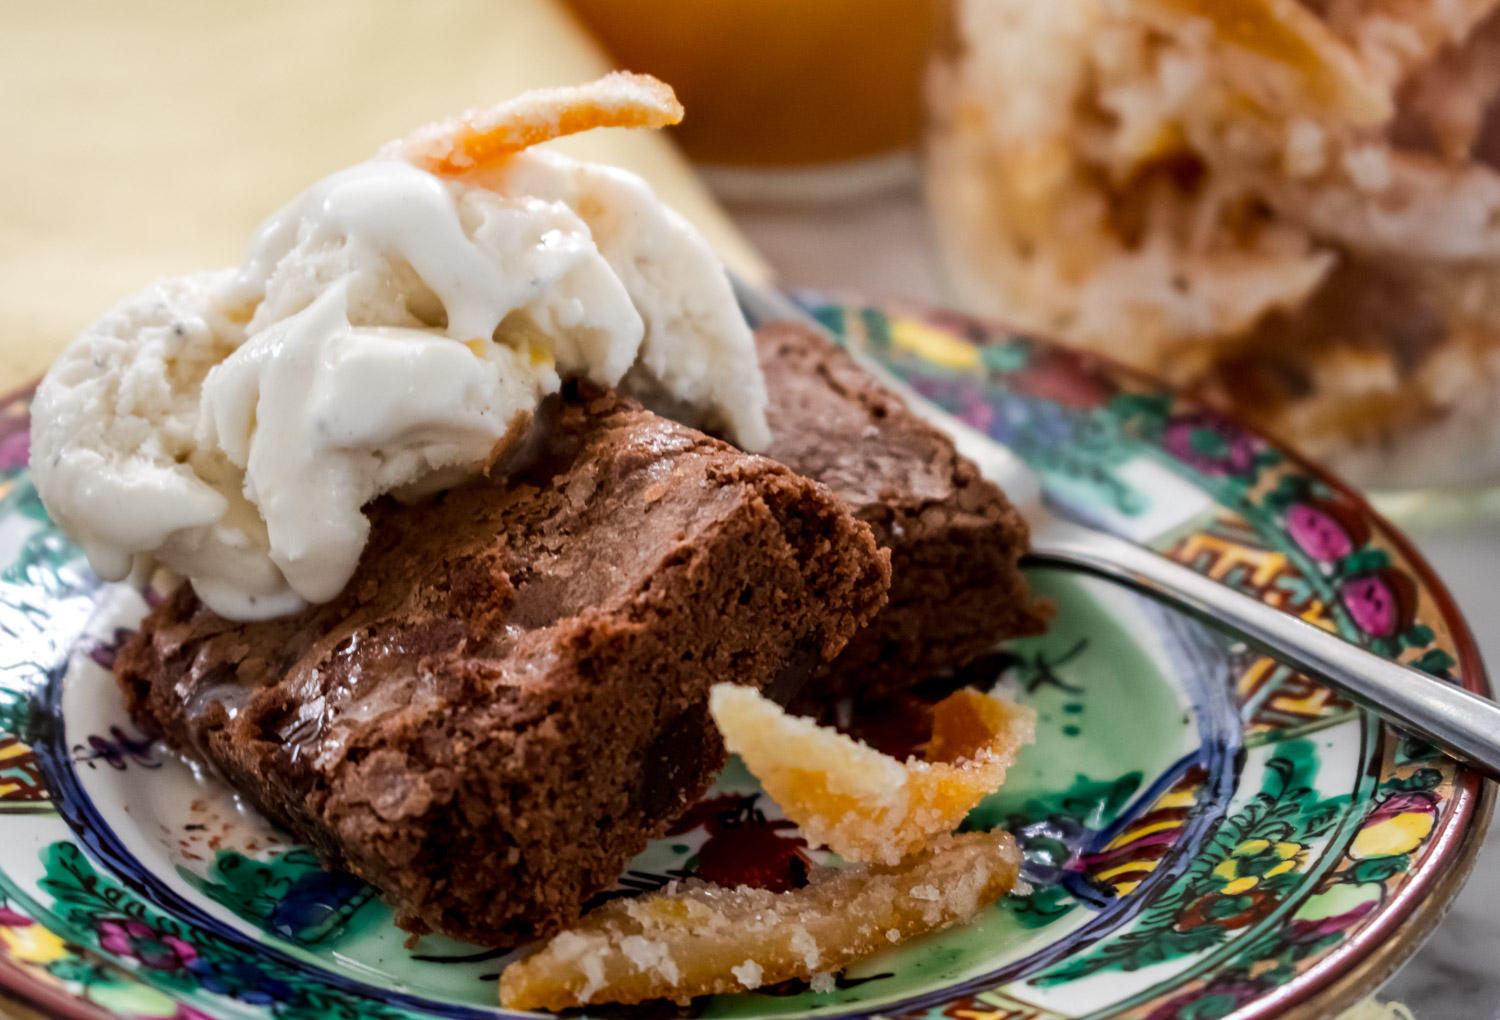 Brownies with candied orange peel topped with vanilla ice cream and whole slices of candied orange peel.